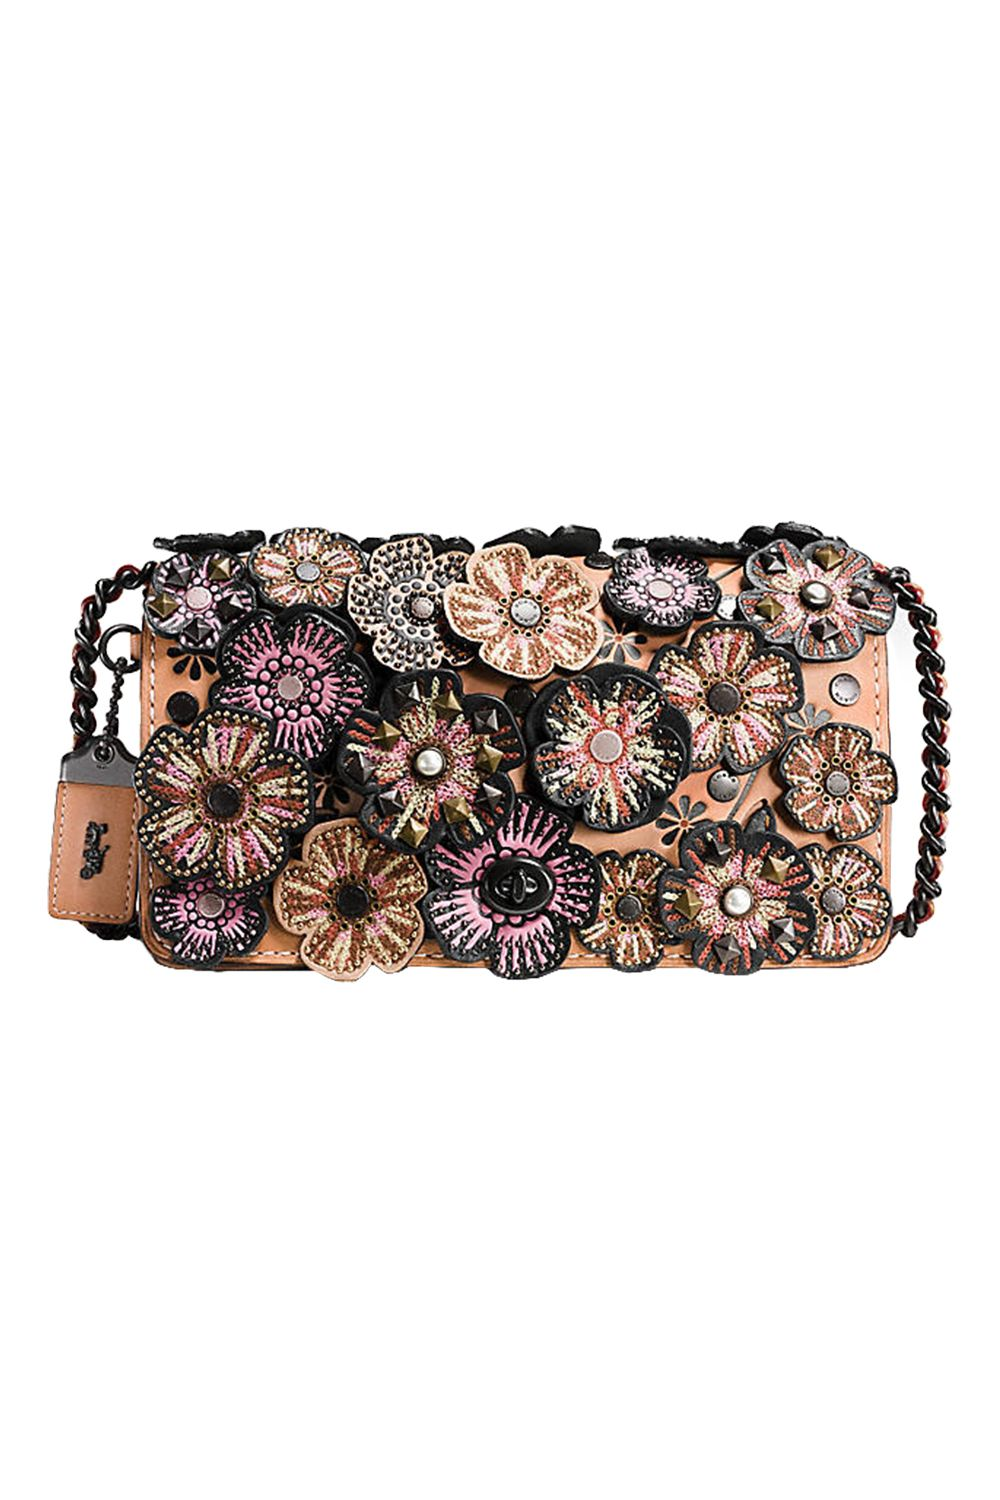 "<p>Covered in abundant embroidered floral applique—along with rivets, faux pearls, and pyramid studs—this handbag is fit for evening wear. One of its most practical features is an interior snap-closure purse, to keep your vitals securely in check. <em data-redactor-tag=""em"">$650, </em><em data-redactor-tag=""em""><a href=""http://www.coach.com/coach-designer-crossbody-embellished-tea-rose-applique-dinky-crossbody-in-glovetanned-leather/56258.html?dwvar_color=BPA55"" target=""_blank"">coach.com</a></em></p>"